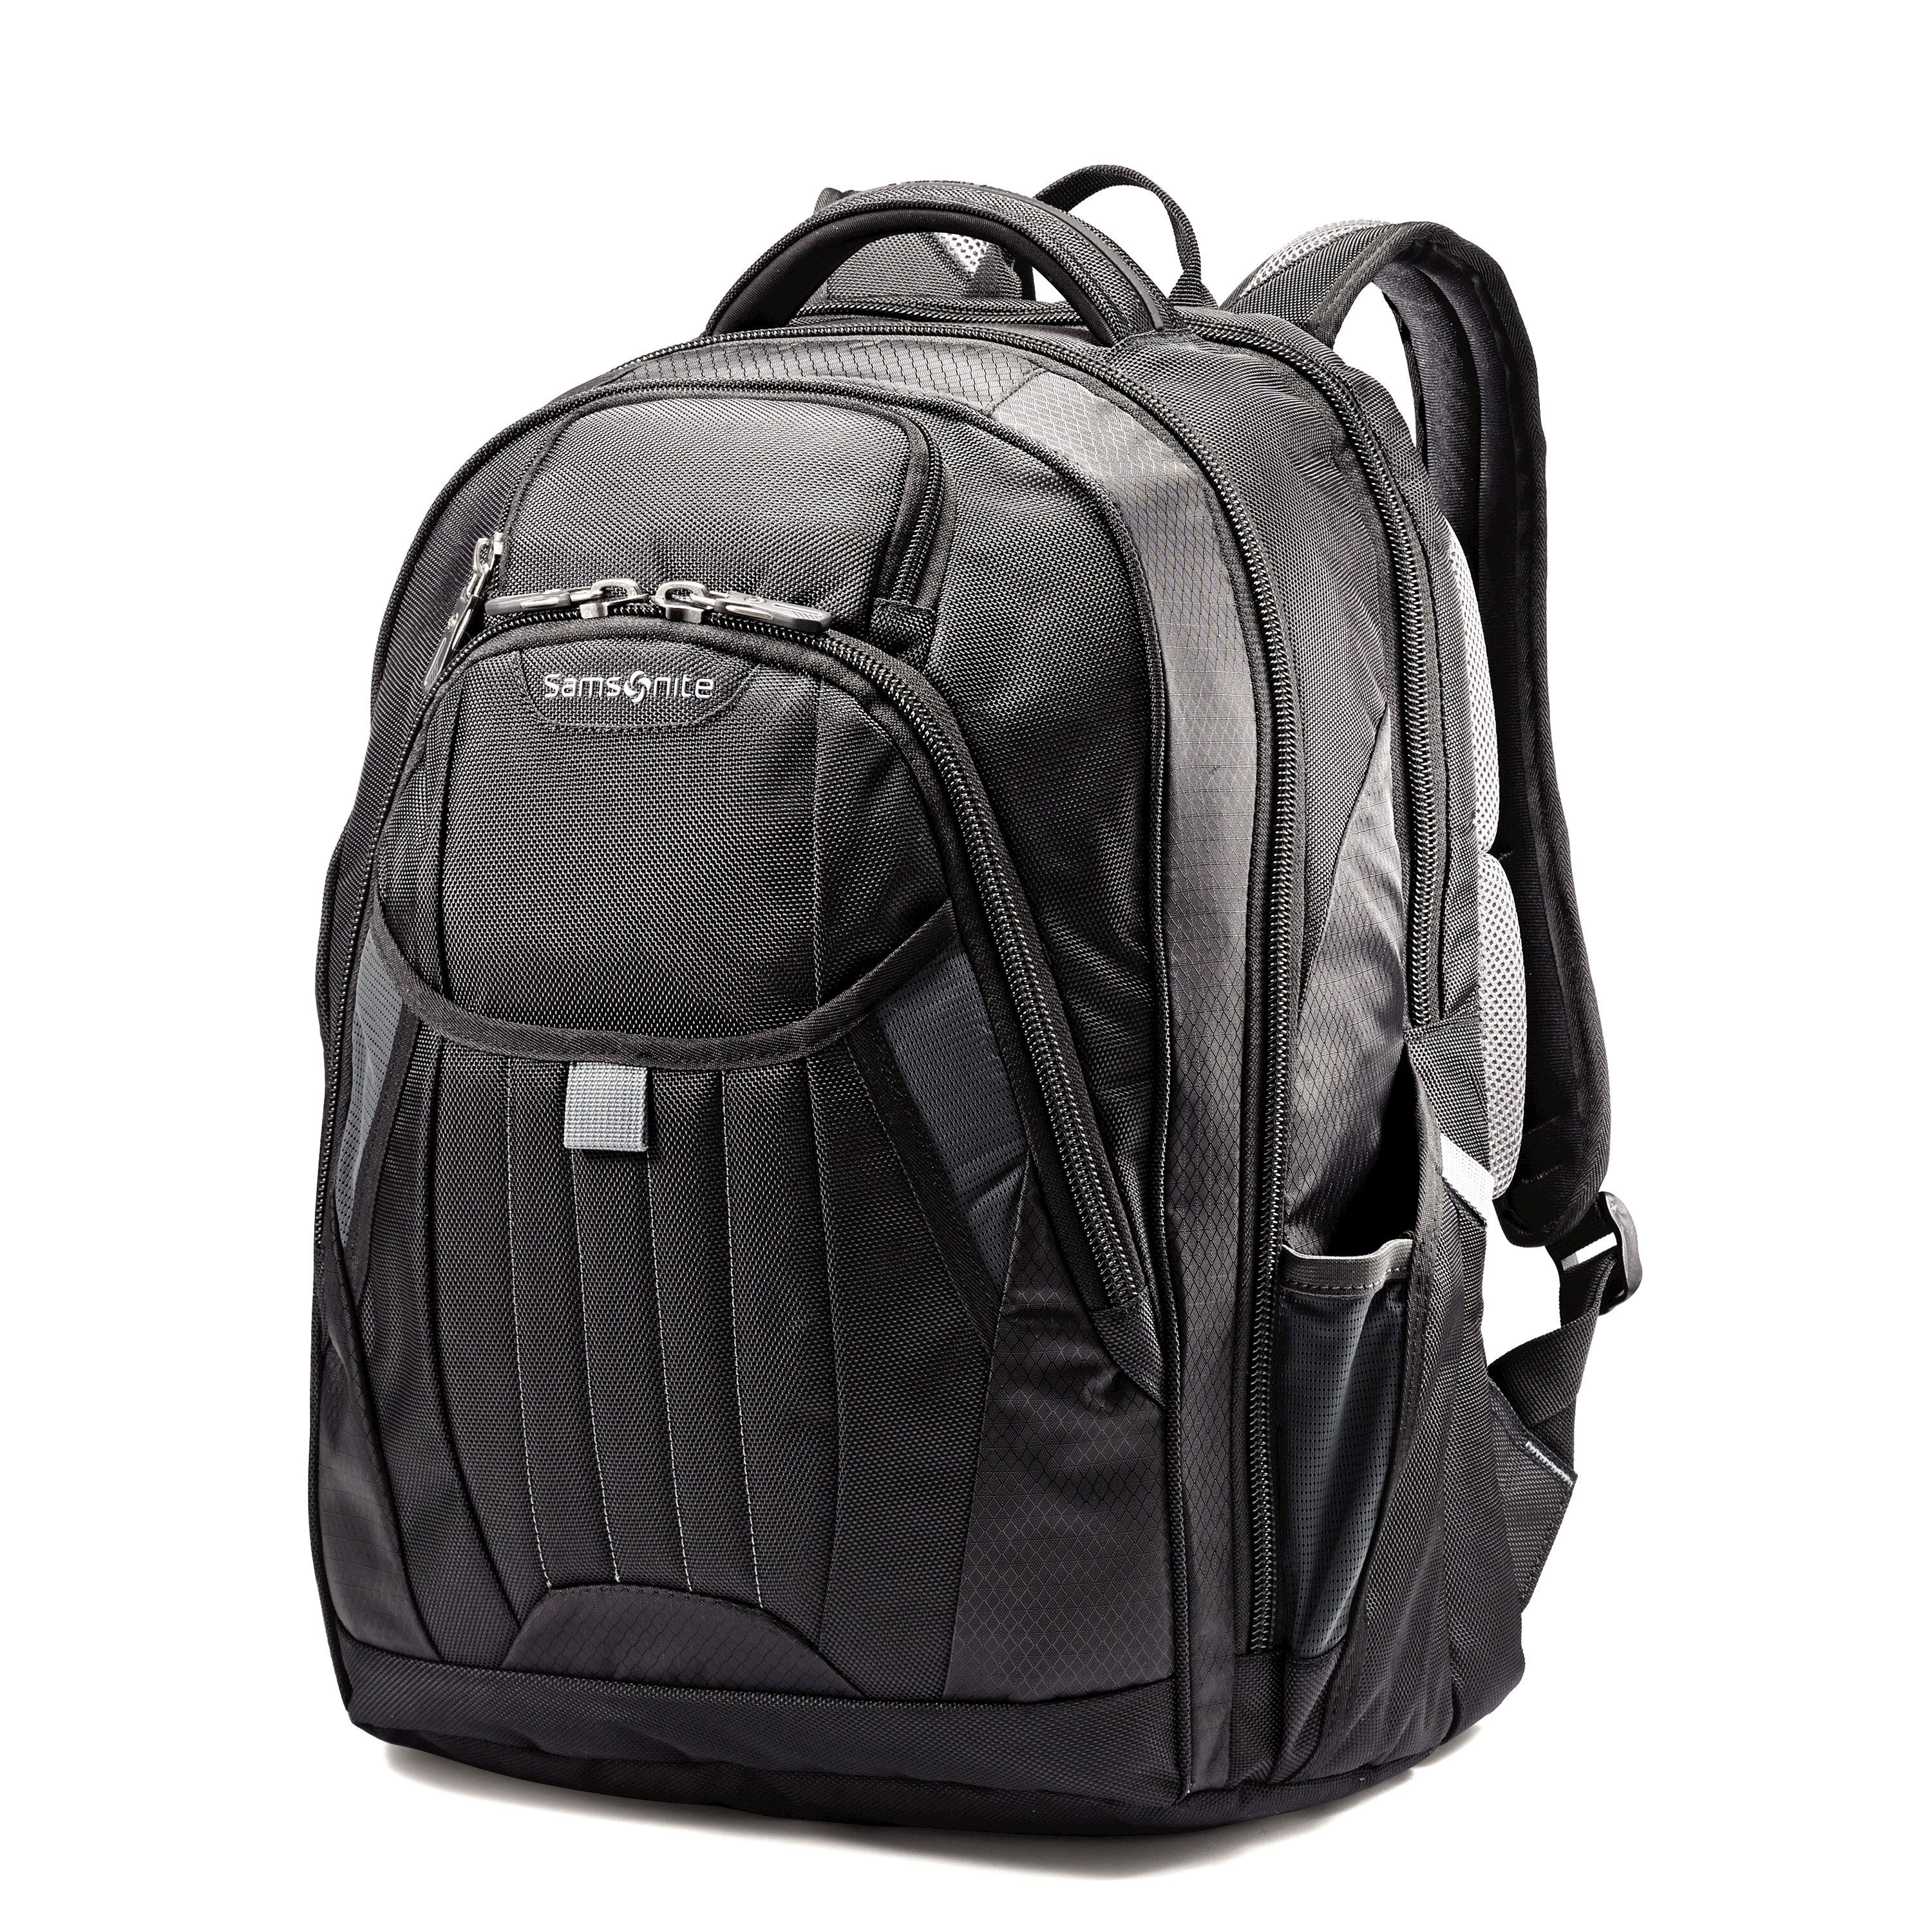 Samsonite Laptop Backpack Epj4H9b5